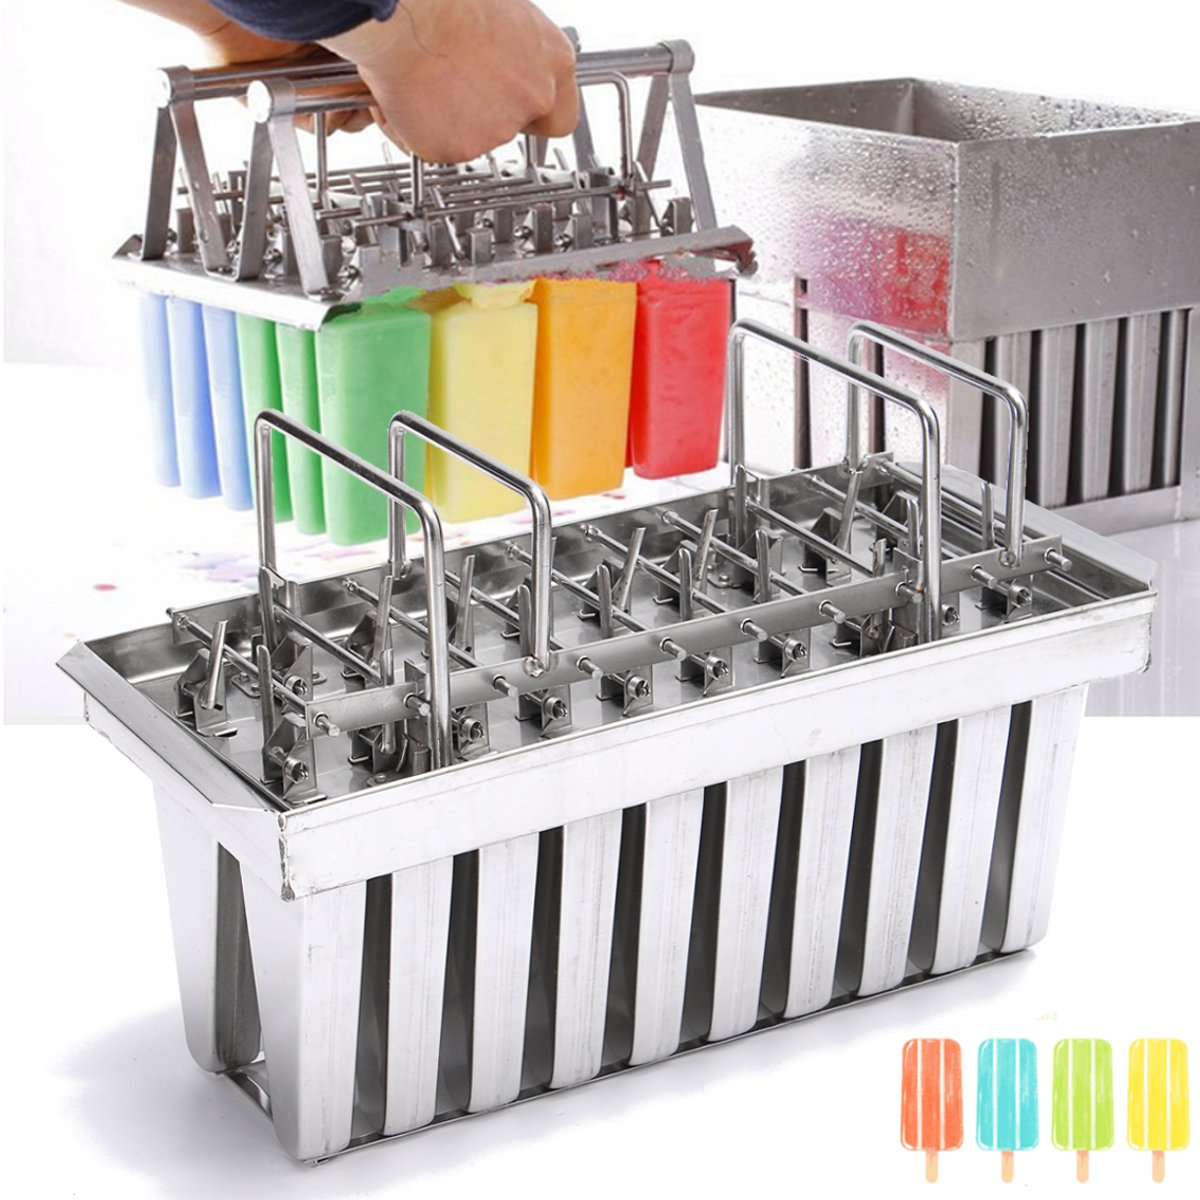 V-type Stainless Steel Mould 20 Cavity 83g Ice Pop Maker Mold DIY Ice Cream Lolly Popsicle Stick